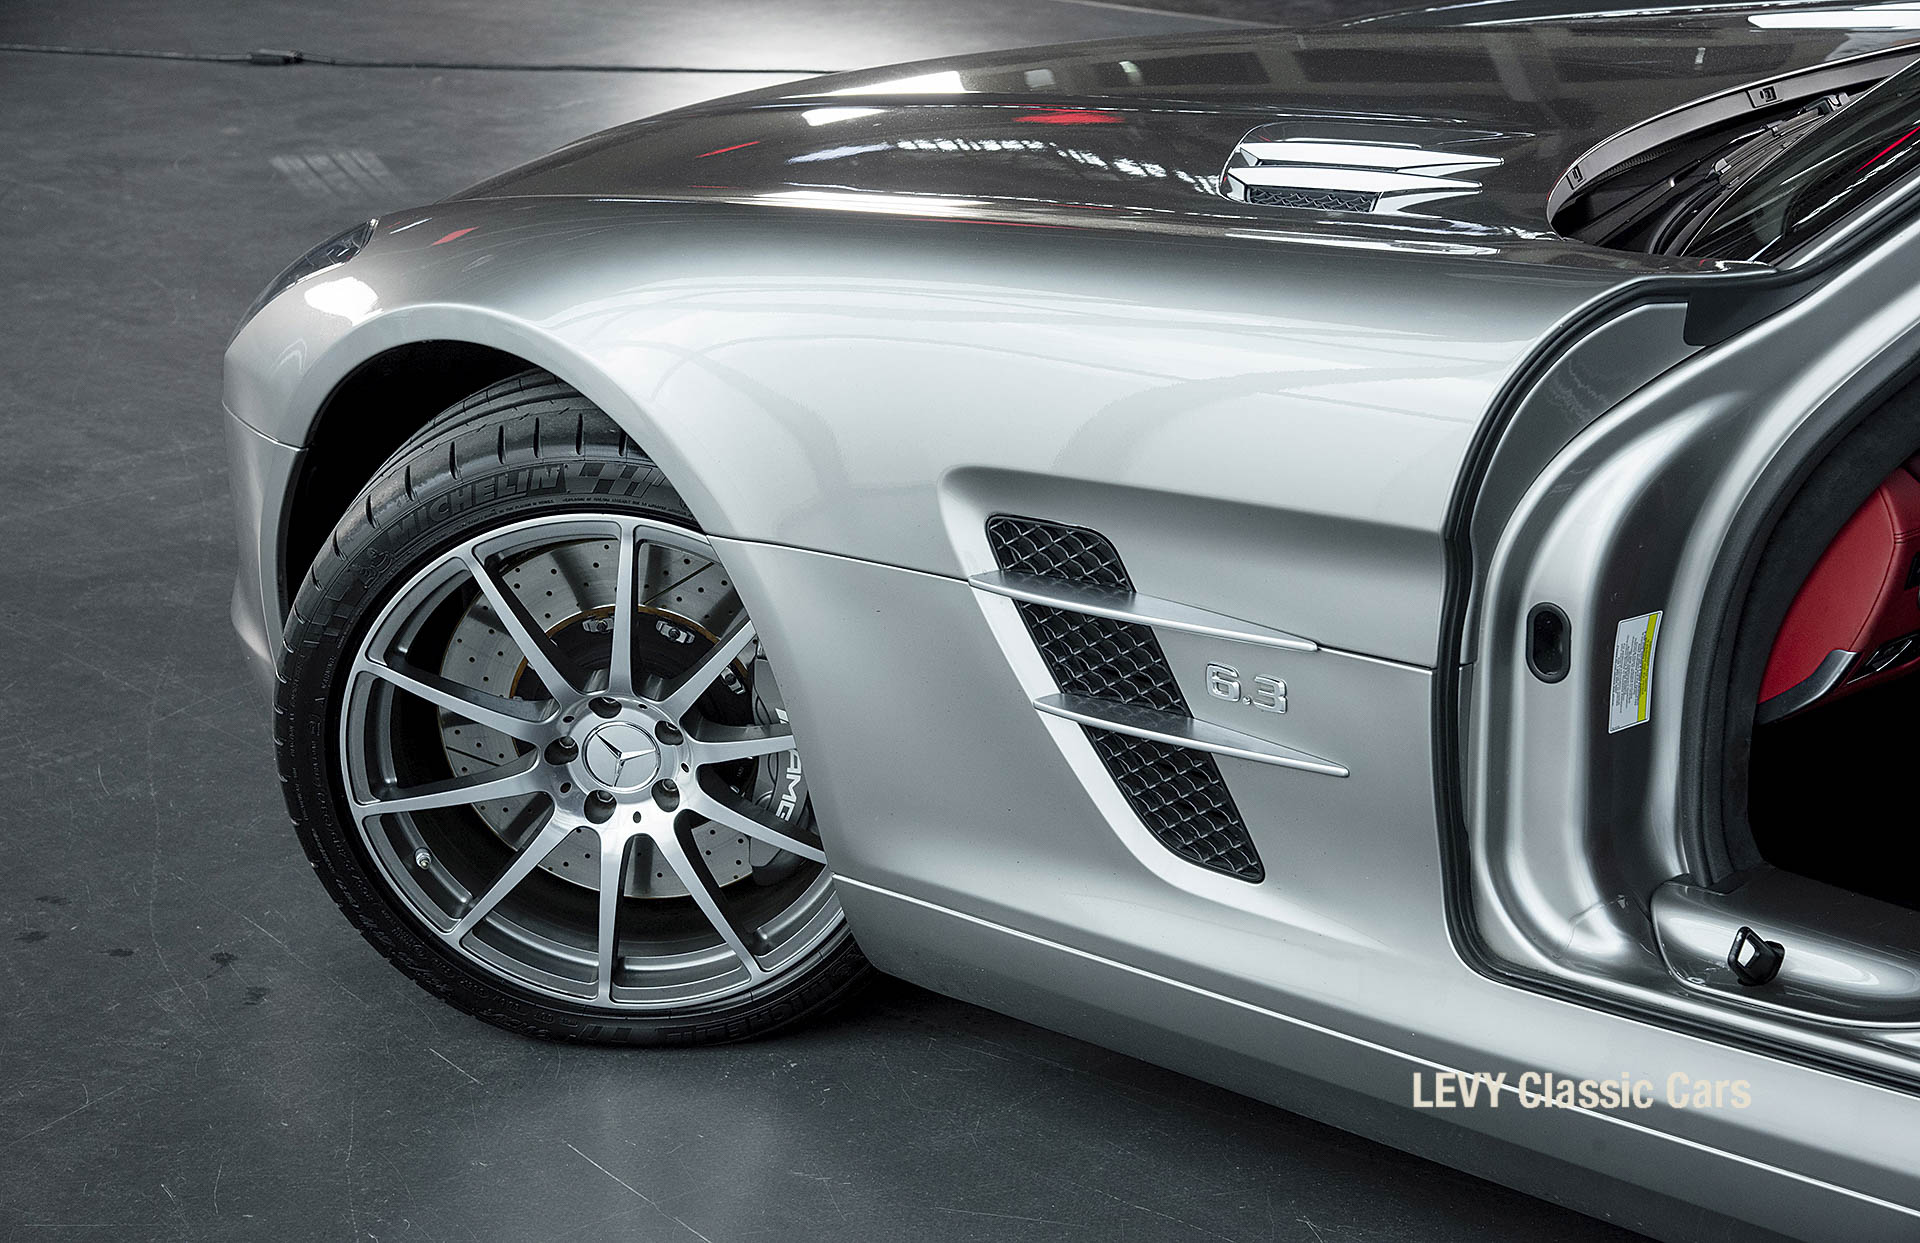 MB SLS AMG 6,3 Coupe 05633 017